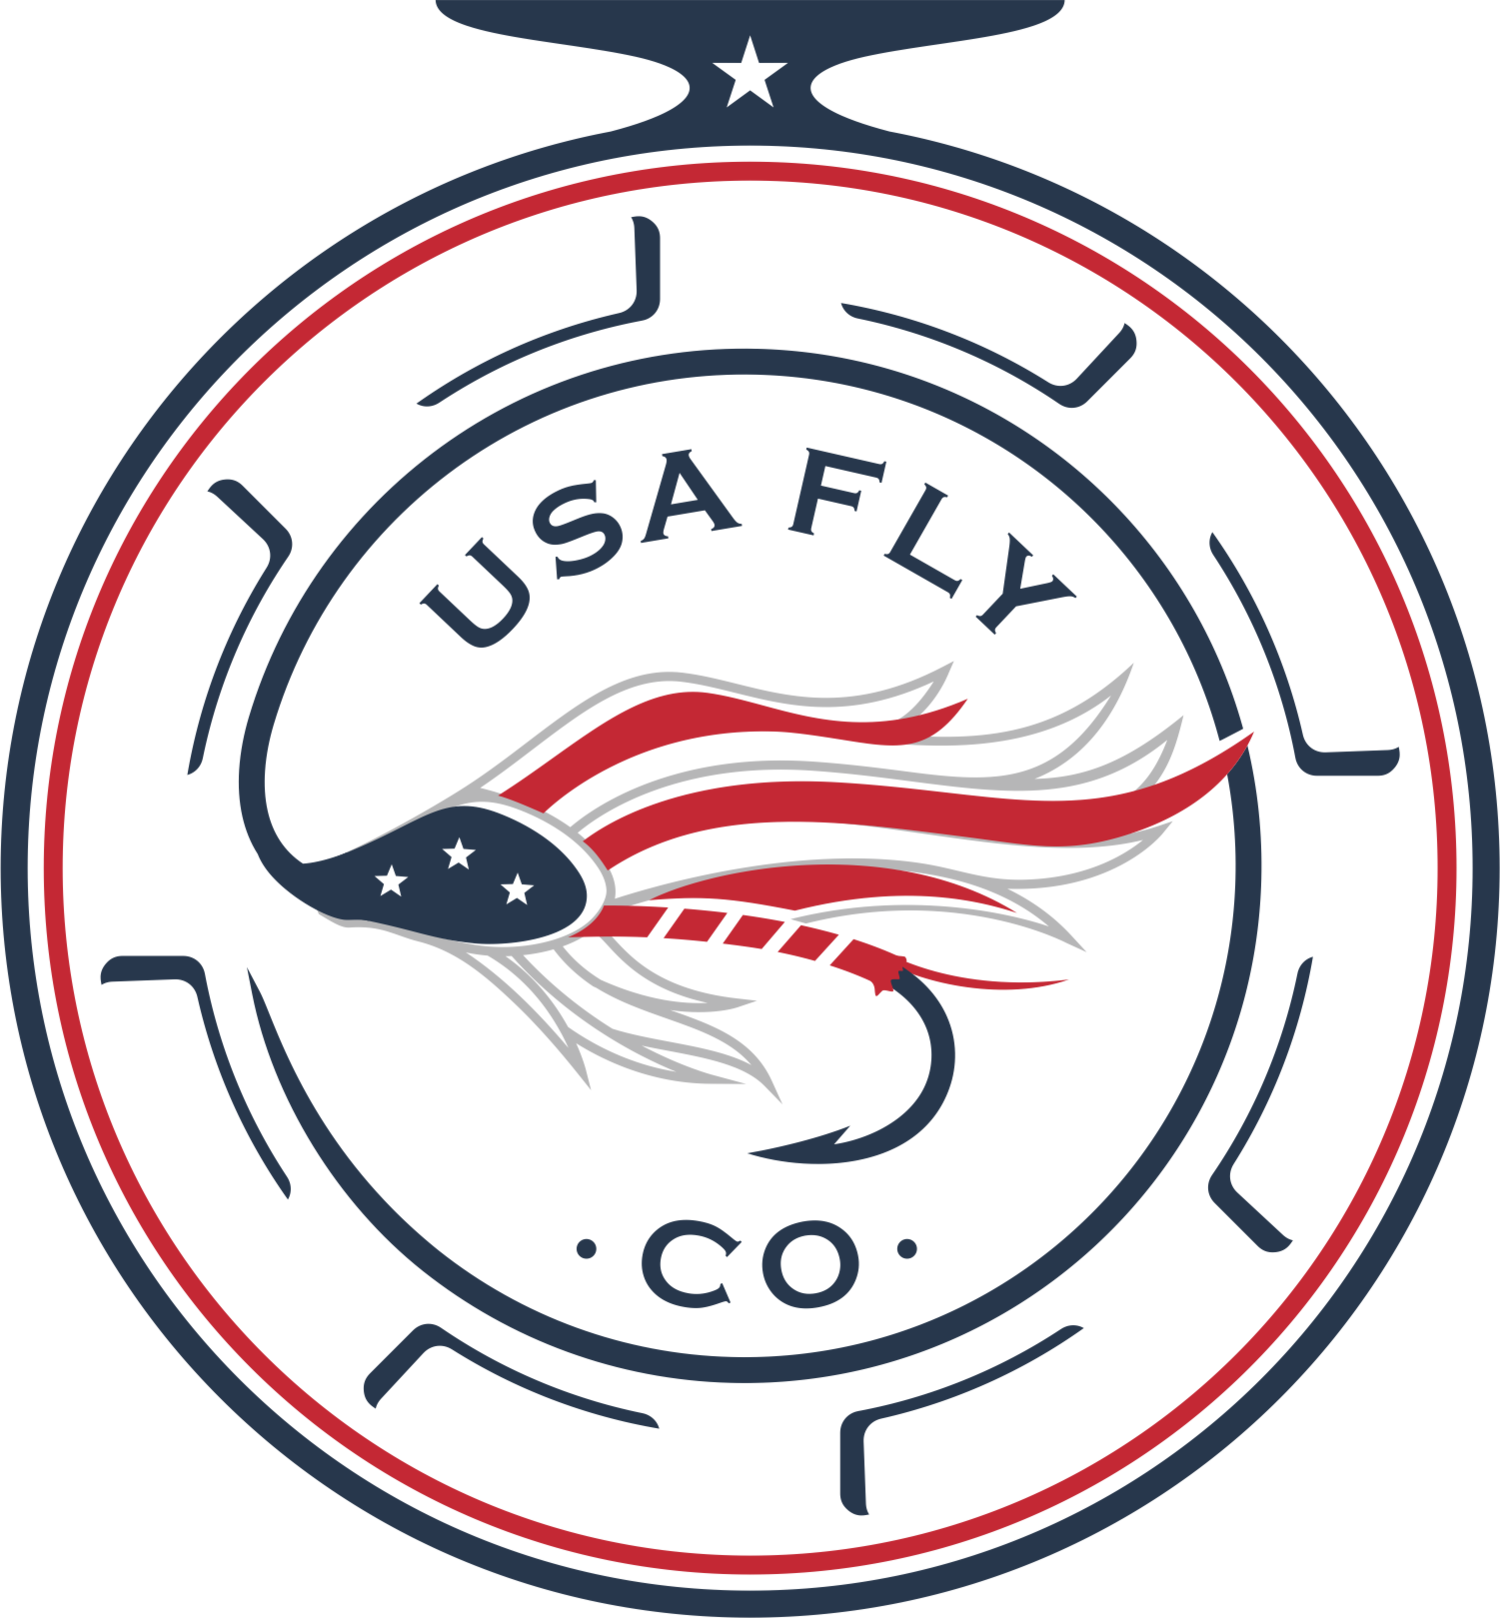 USA FLY CO The Best Fly Fishing Apparel for American Anglers Supporting Veterans